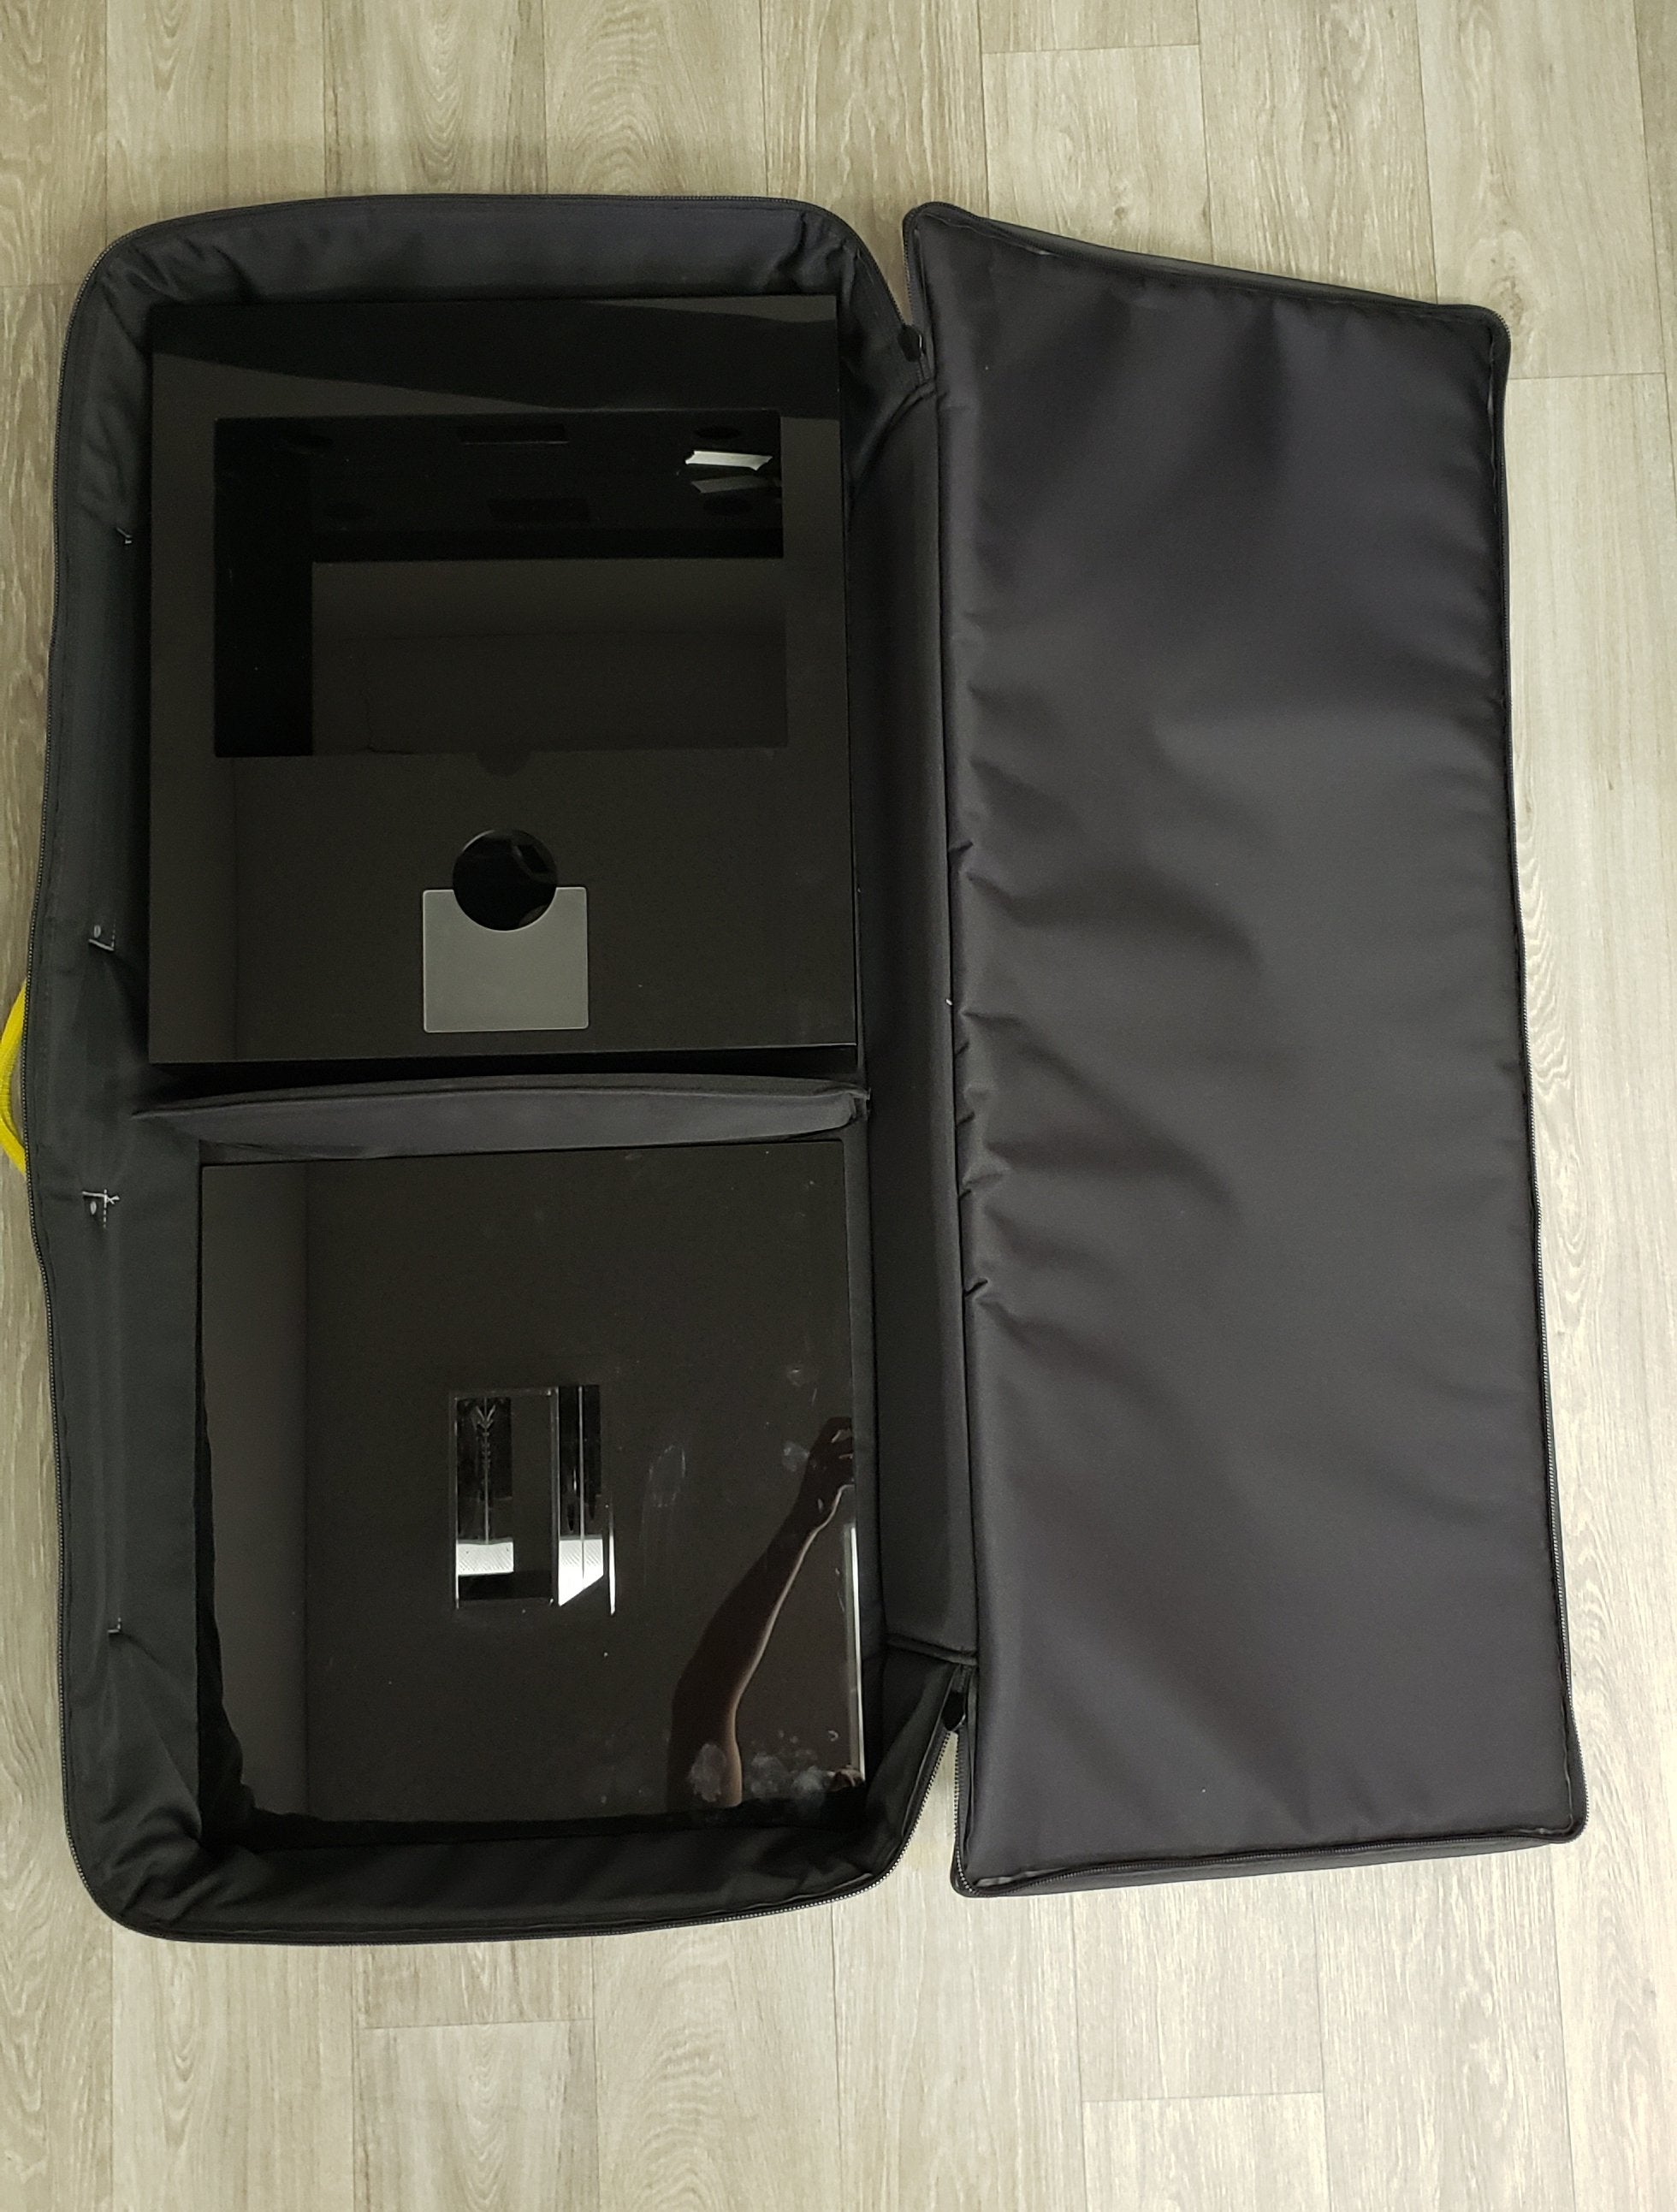 portable photo booth in carry case